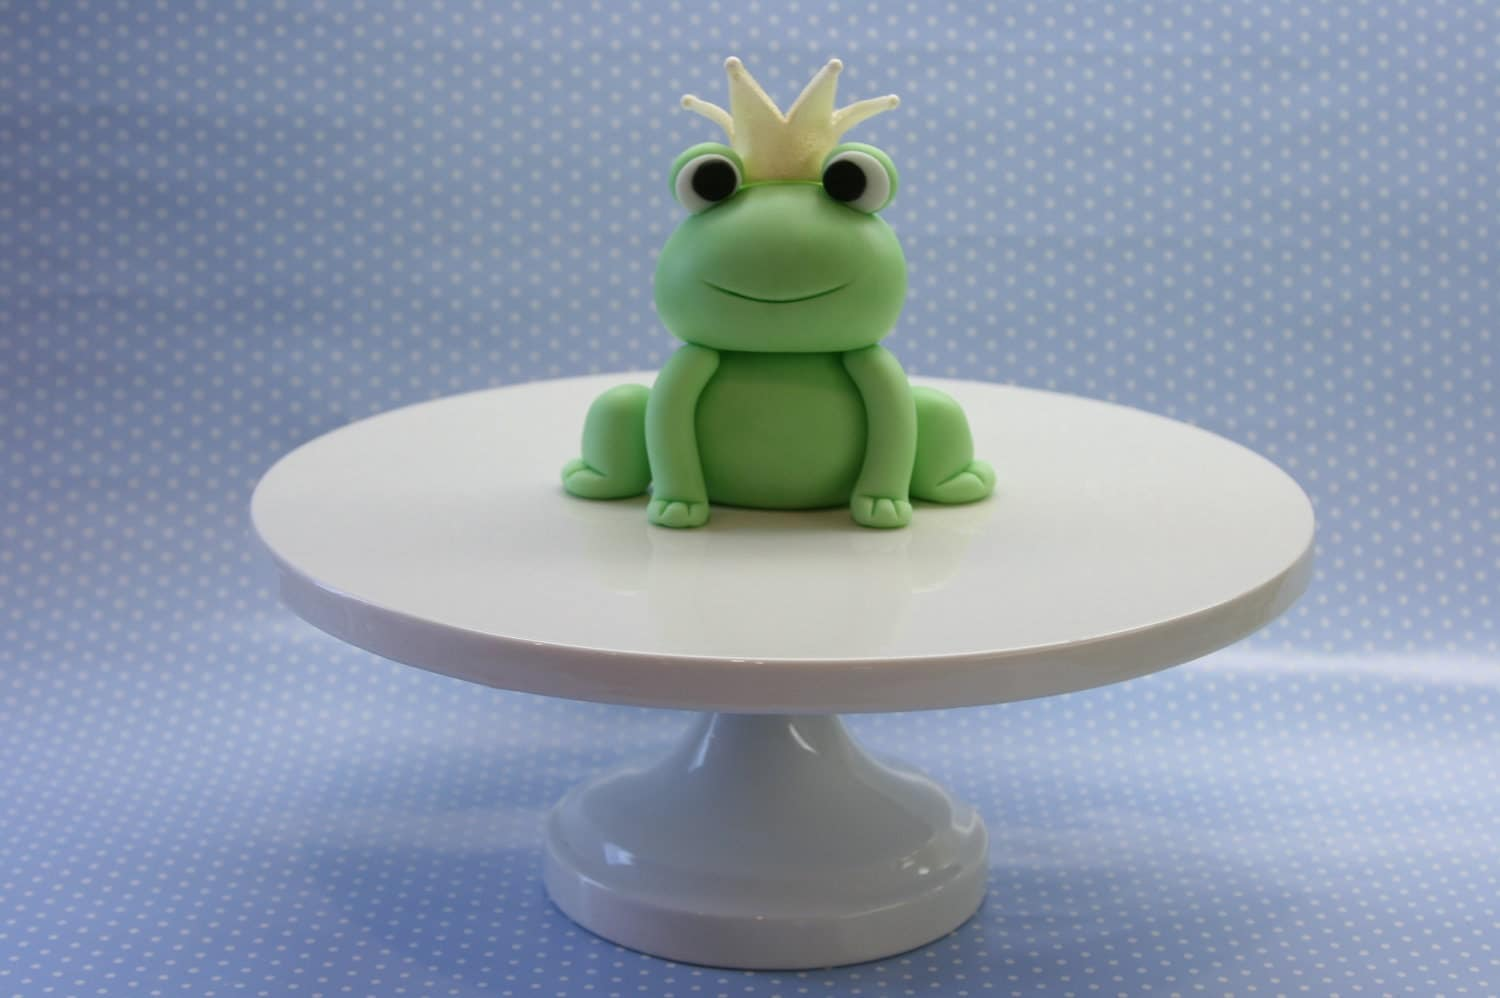 frog wedding cake toppers items similar to prince frog cake topper set on etsy 14499